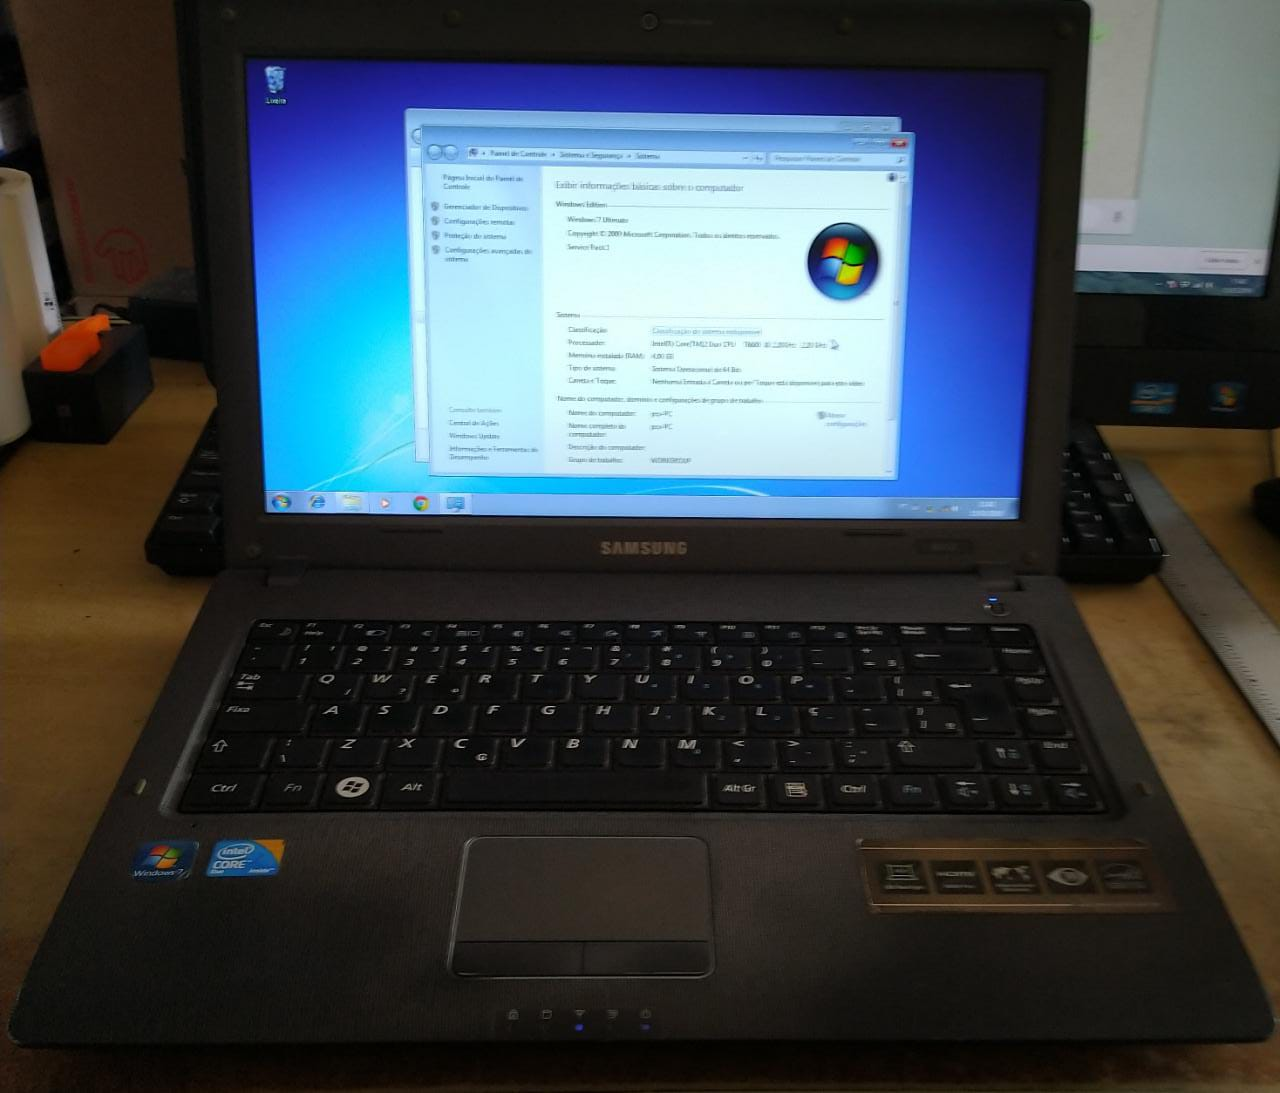 NOTEBOOK SAMSUNG R430 DRIVER FOR WINDOWS 7